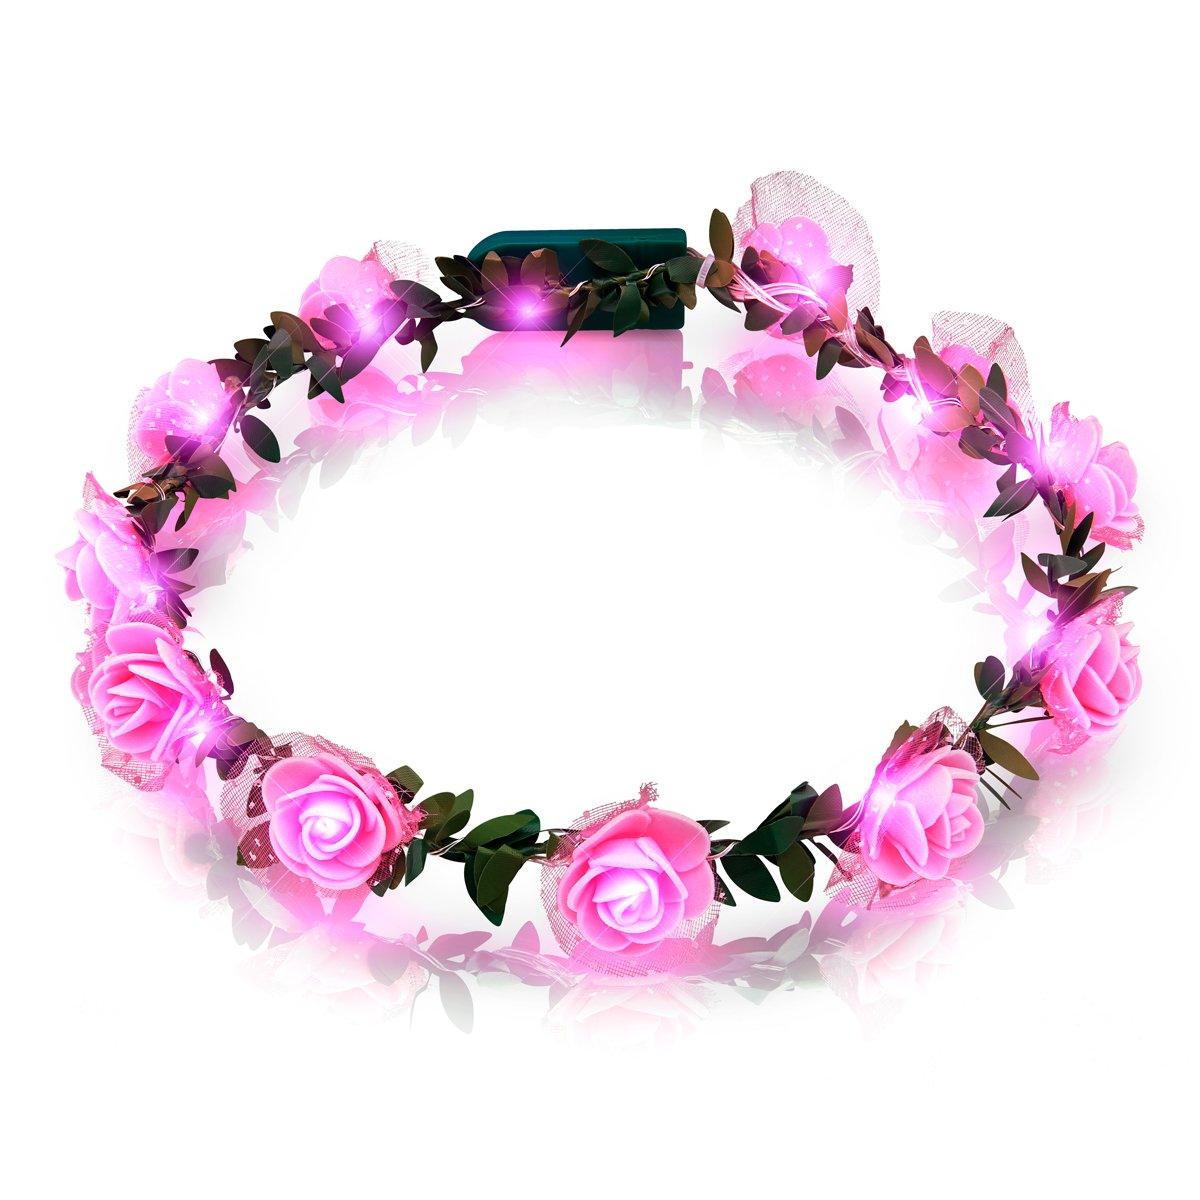 Light Up Pink Rose Flower Princess Halo Crown Headband All Products